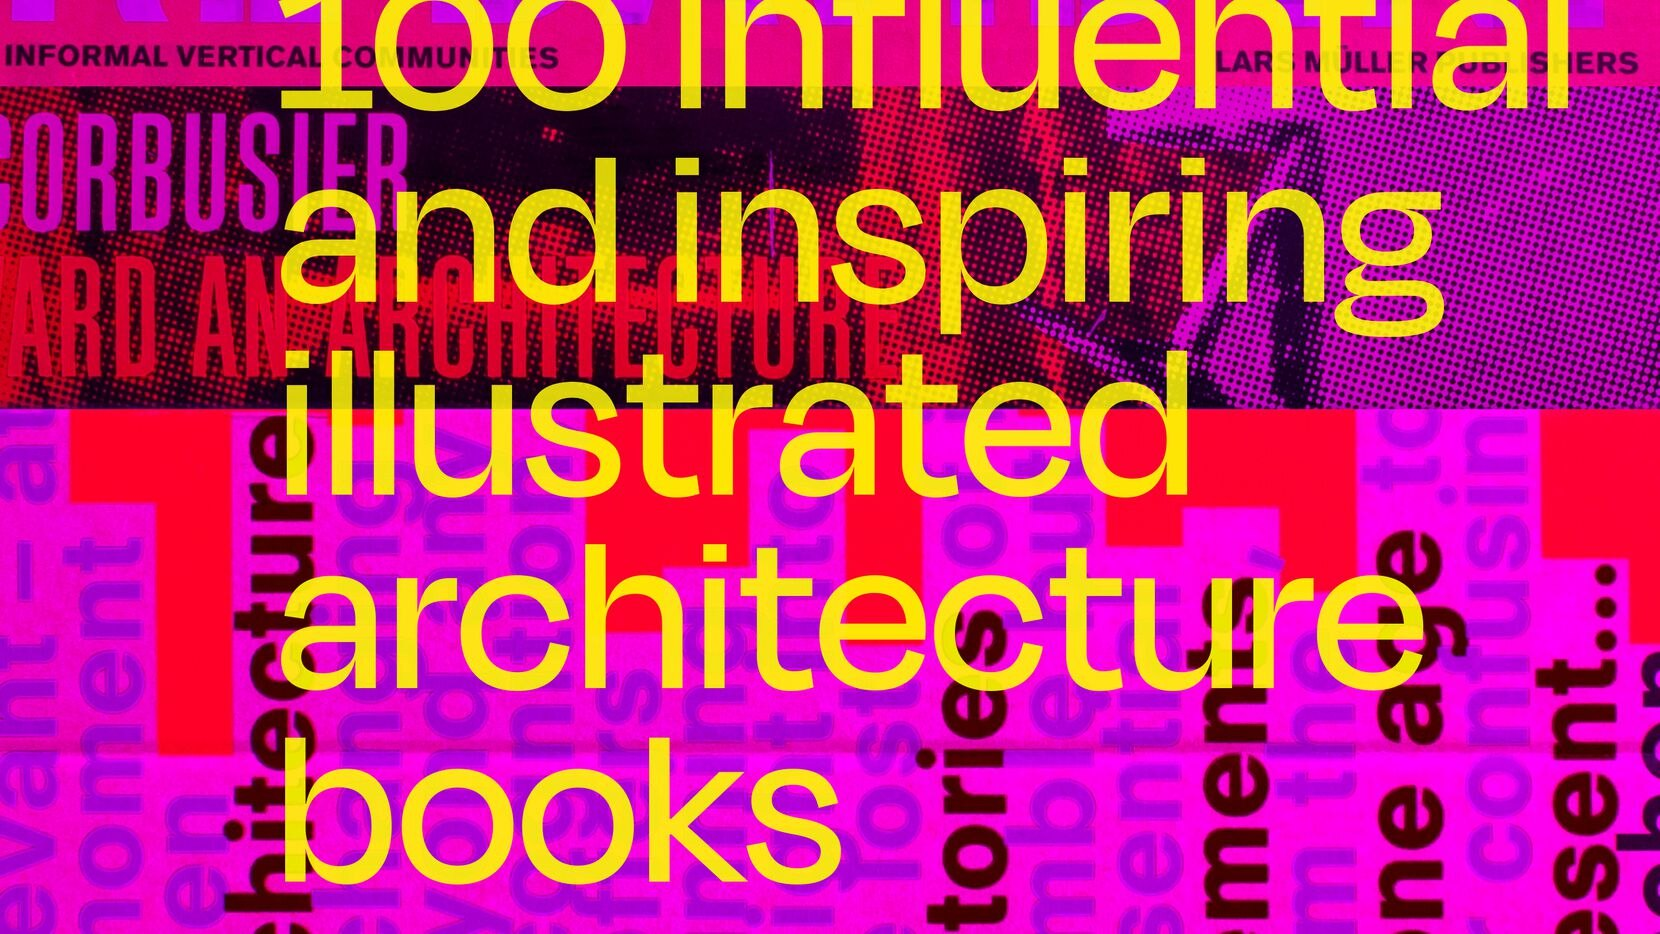 """John Hill's """"Buildings in Print: 100 Influential and Inspiring Illustrated Architecture Books"""" offers plenty of material for architecture enthusiasts' reading lists."""